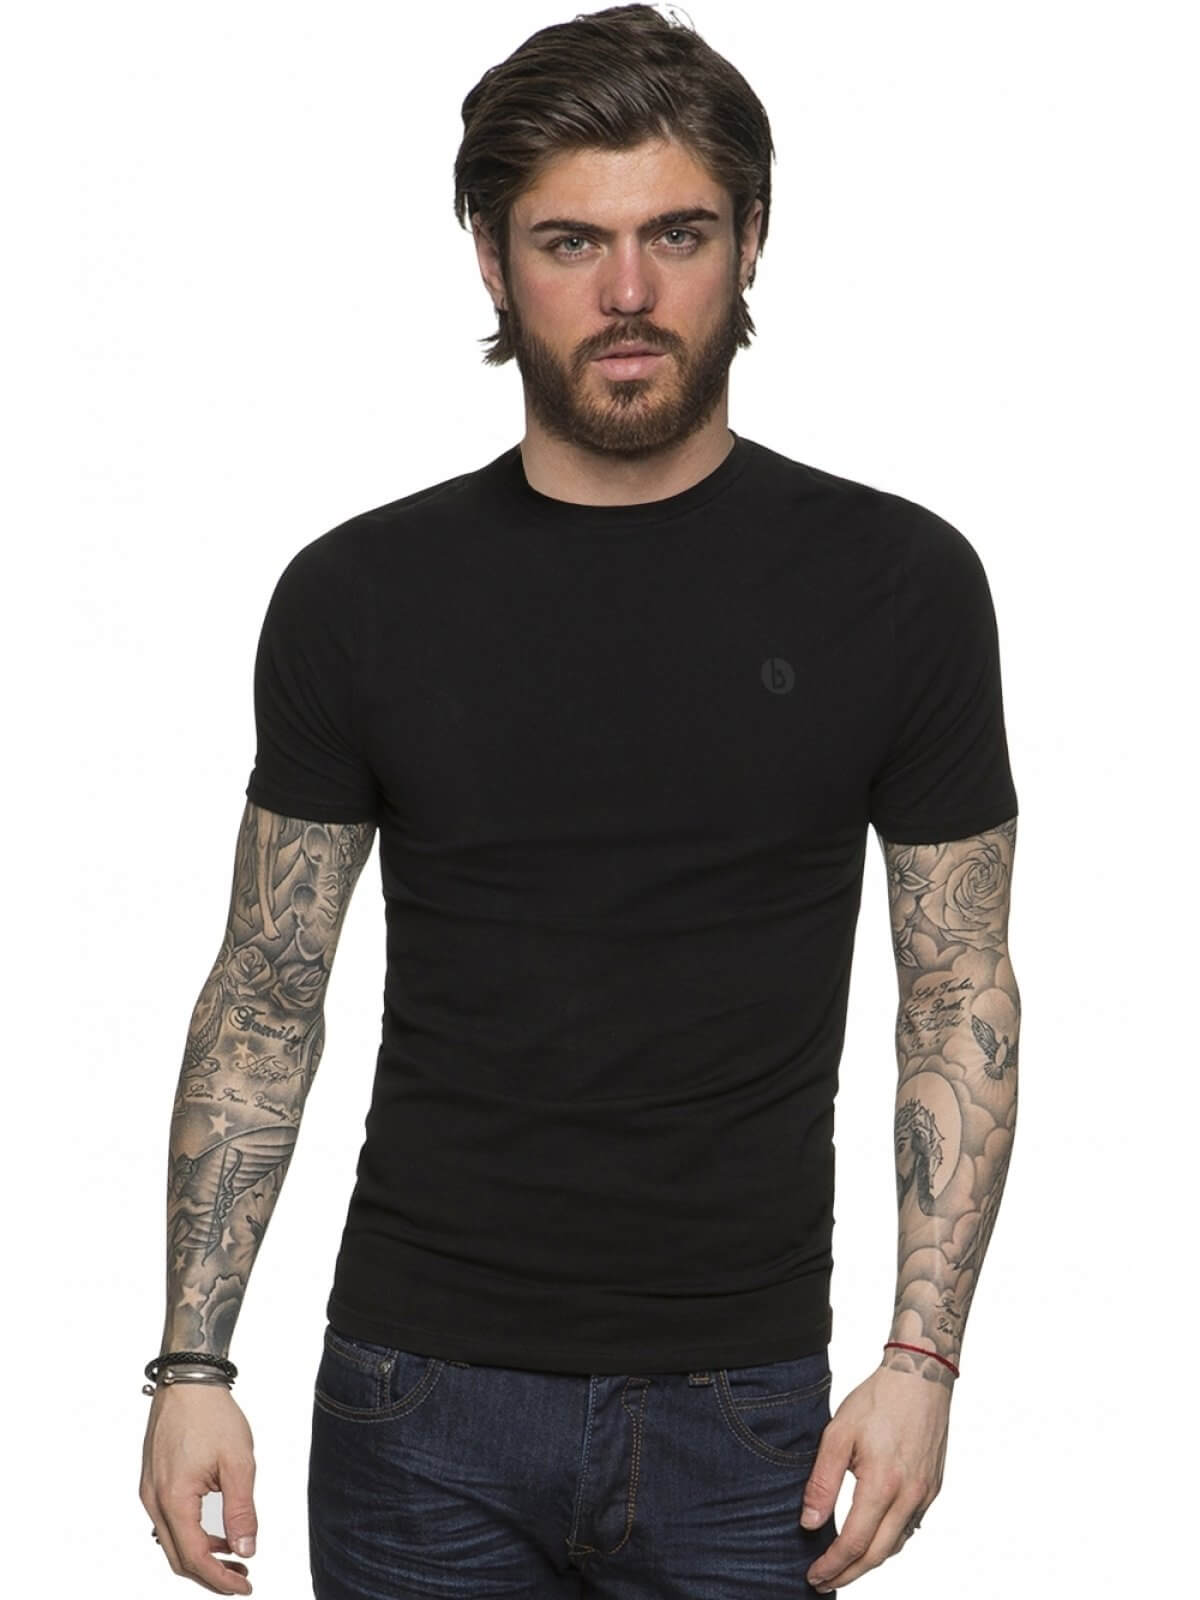 Clearance | BBH Mens Basic Short Sleeved T-shirt | Bound By Honour